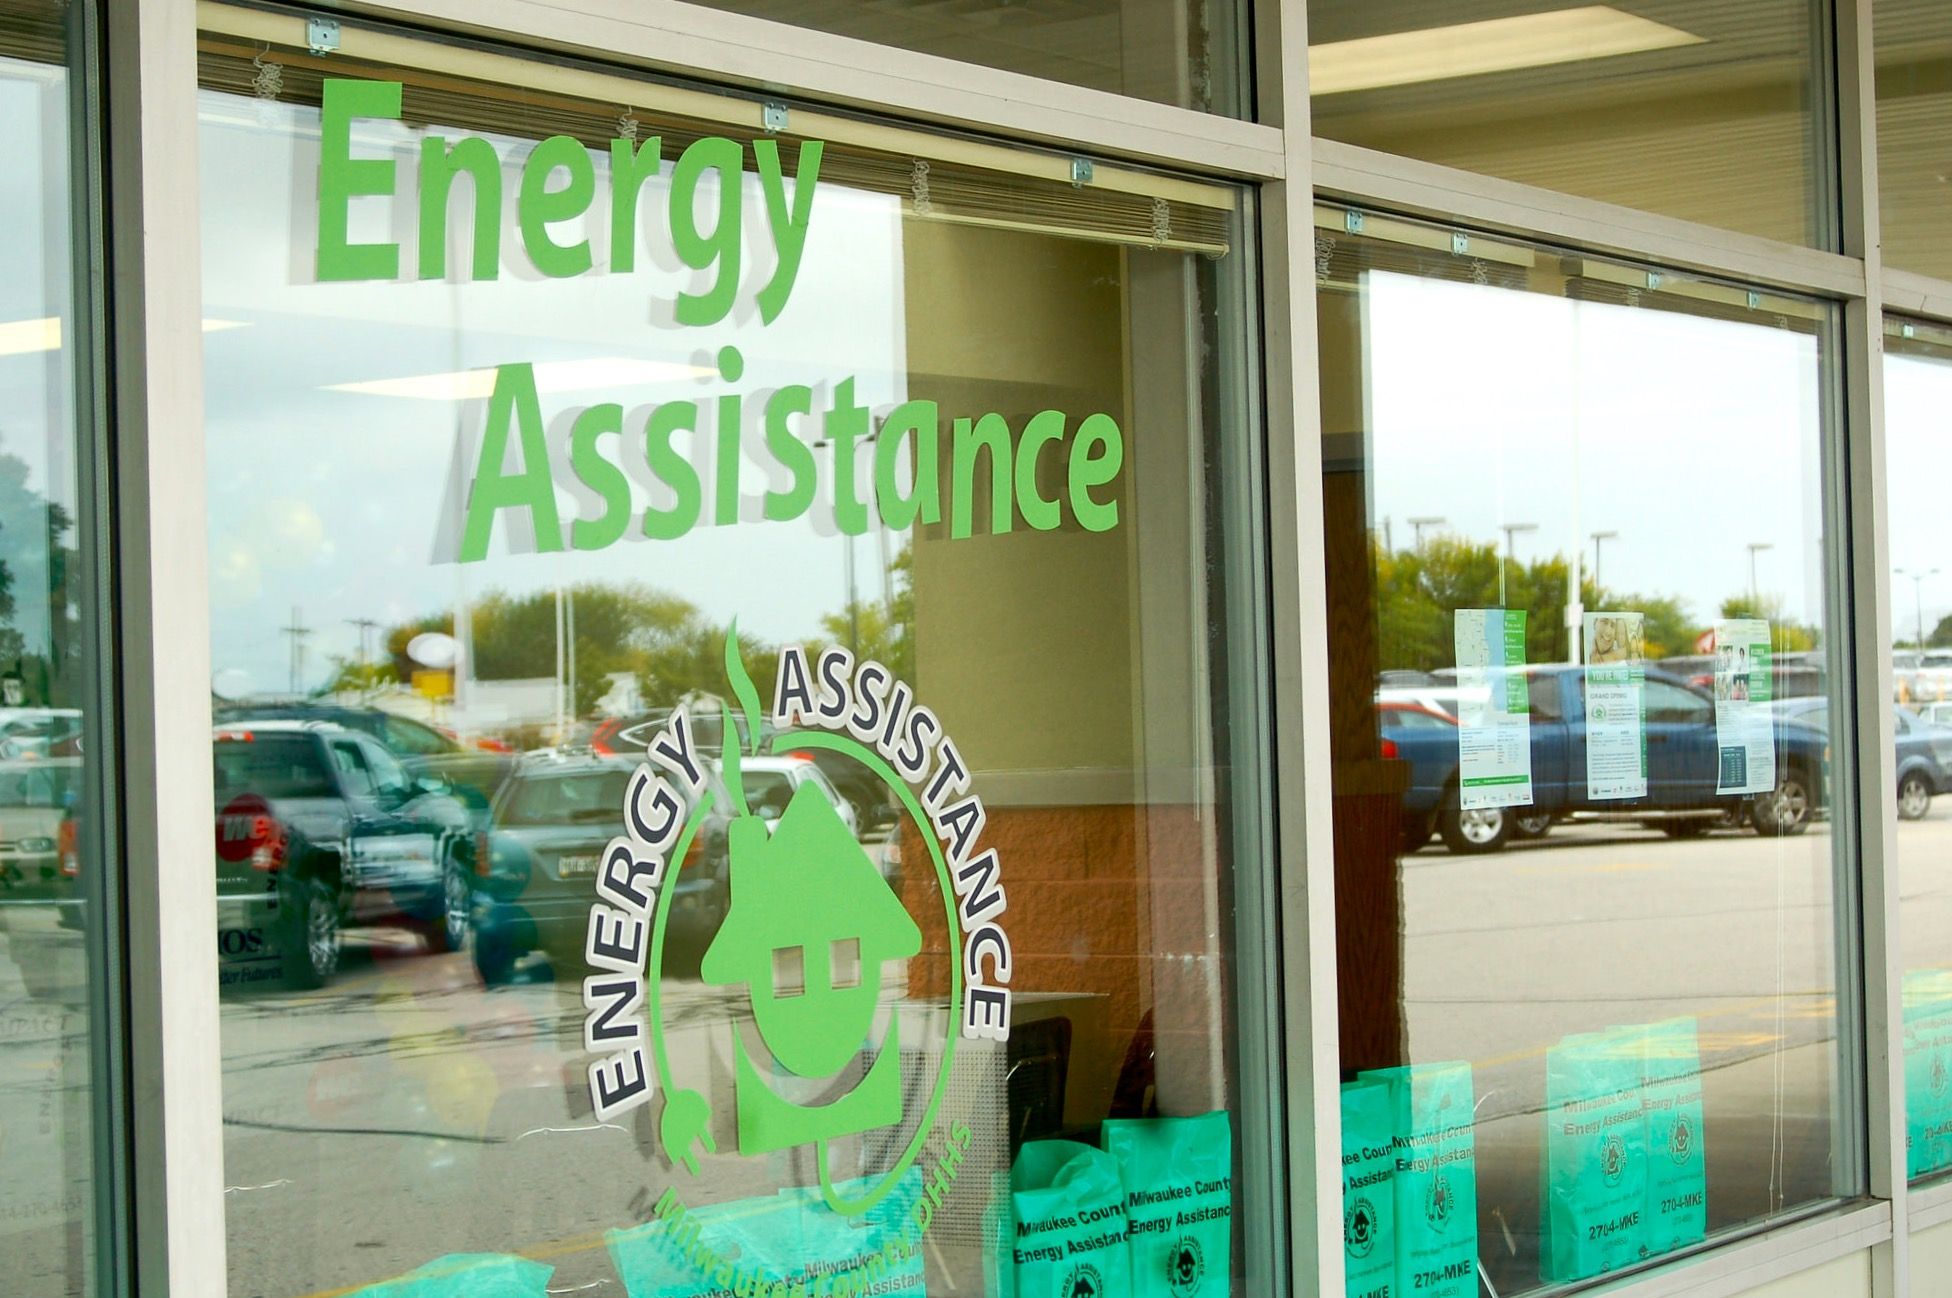 Two new county Energy Assistance Program sites opened this year, at 6918 W. Brown Deer Road and 5663 S. 27th St. in Greenfield. (Photo by Brittany Carloni)